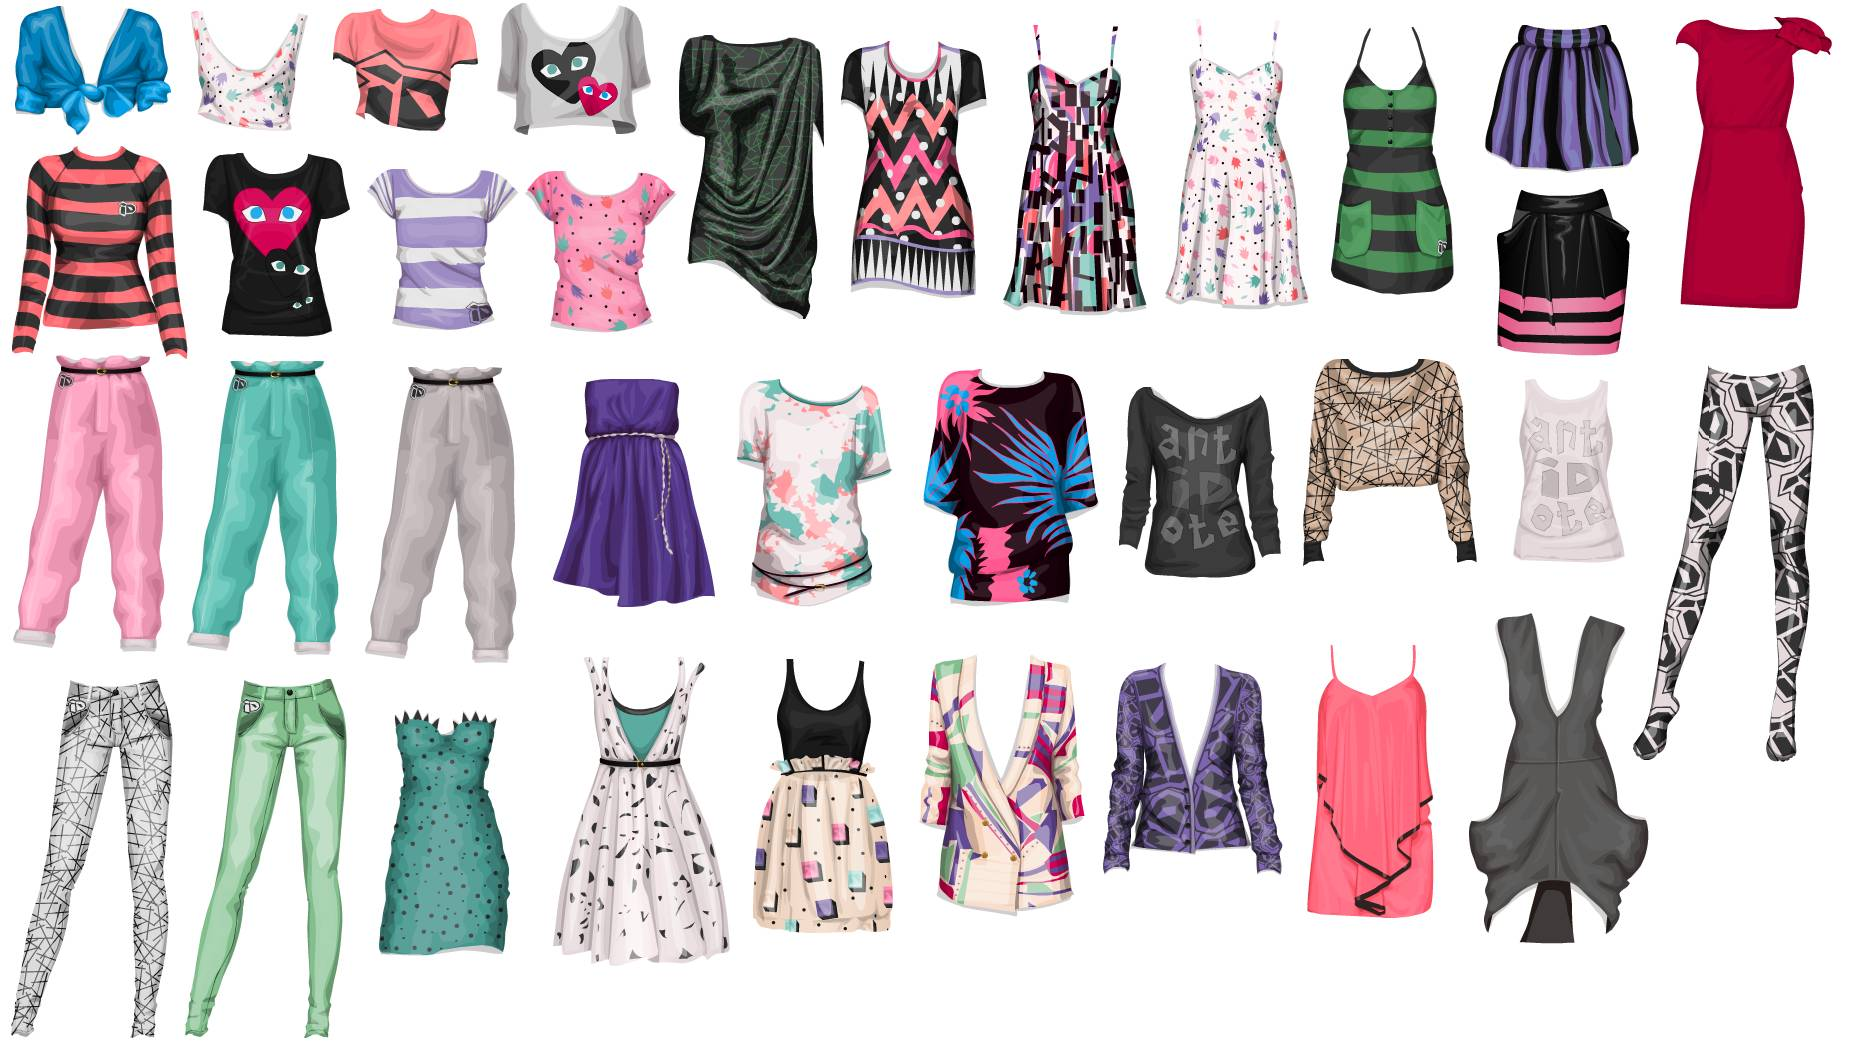 Stardoll Clothes A bunch of different stardoll clothes 1849x1062